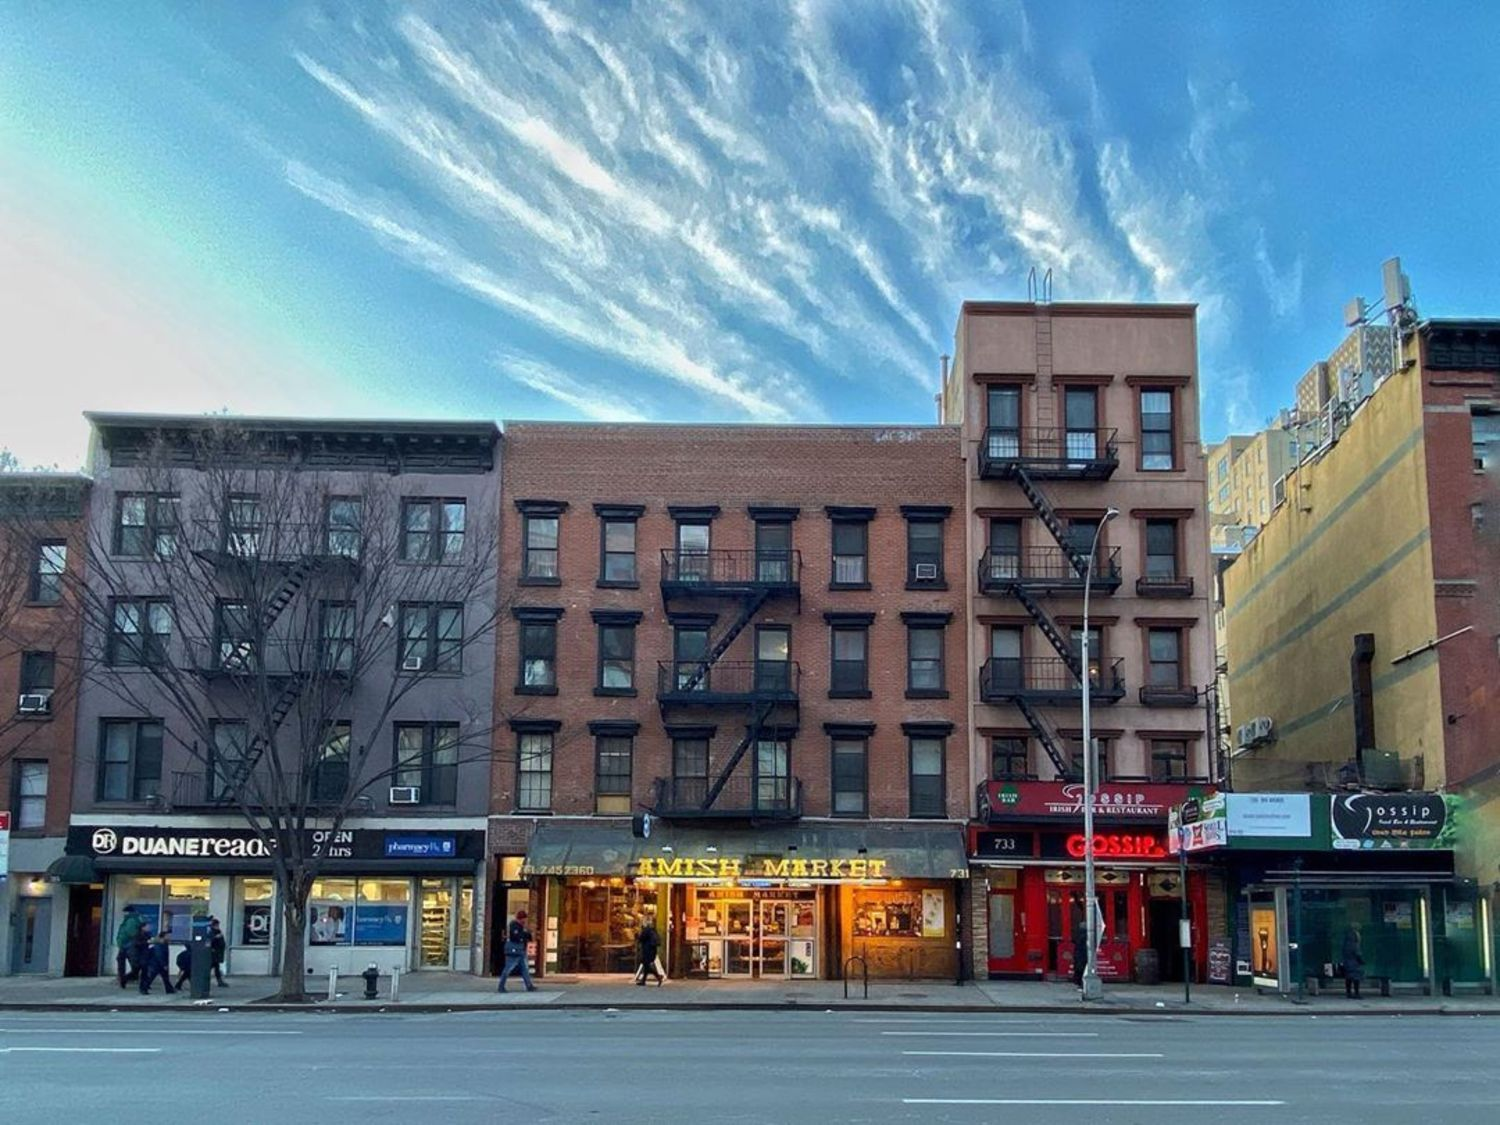 9th Avenue, Hell's Kitchen, Manhattan